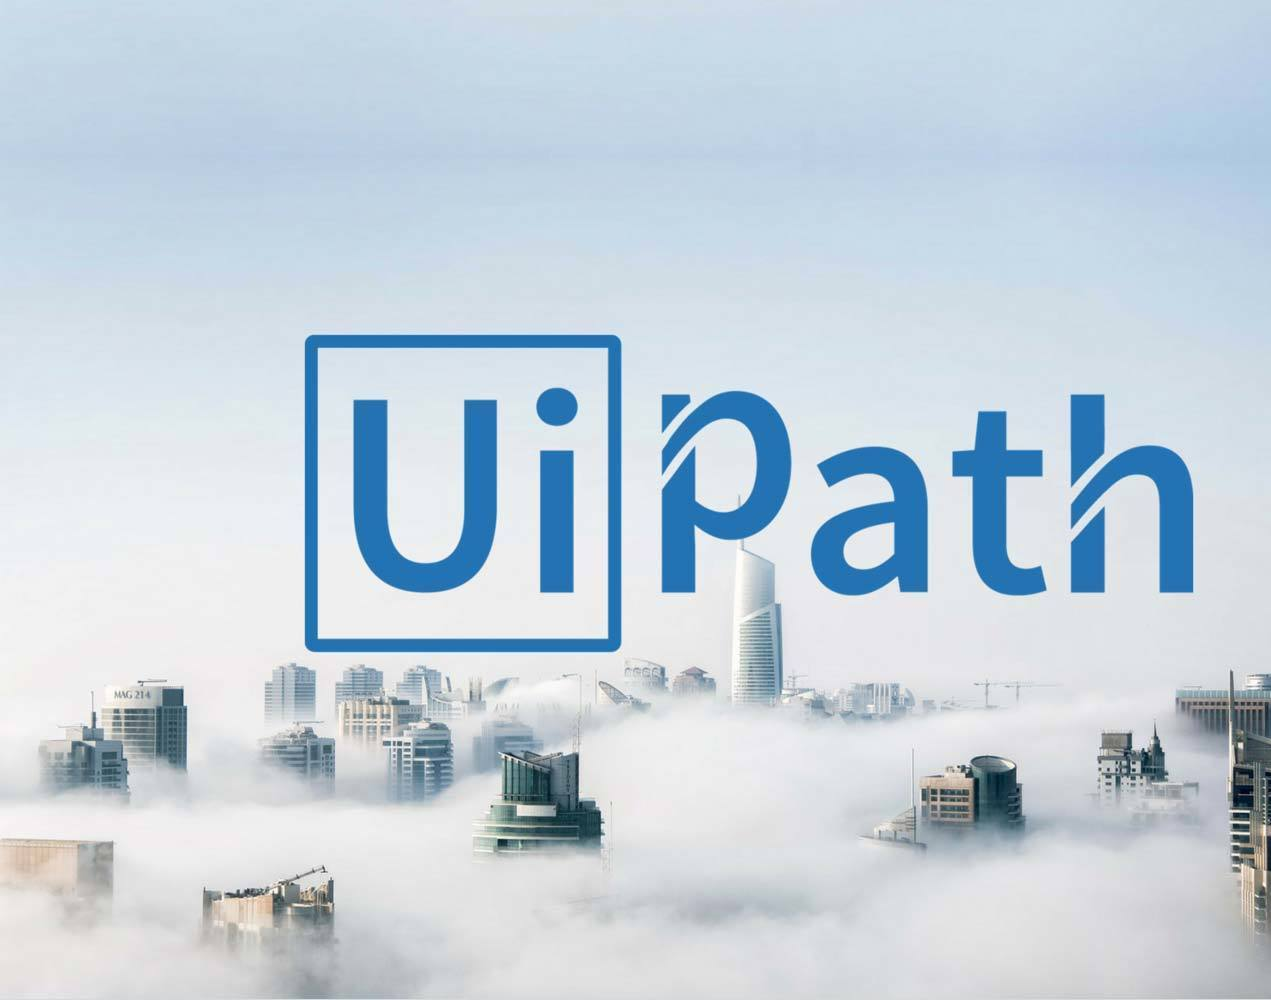 ui-path_copy